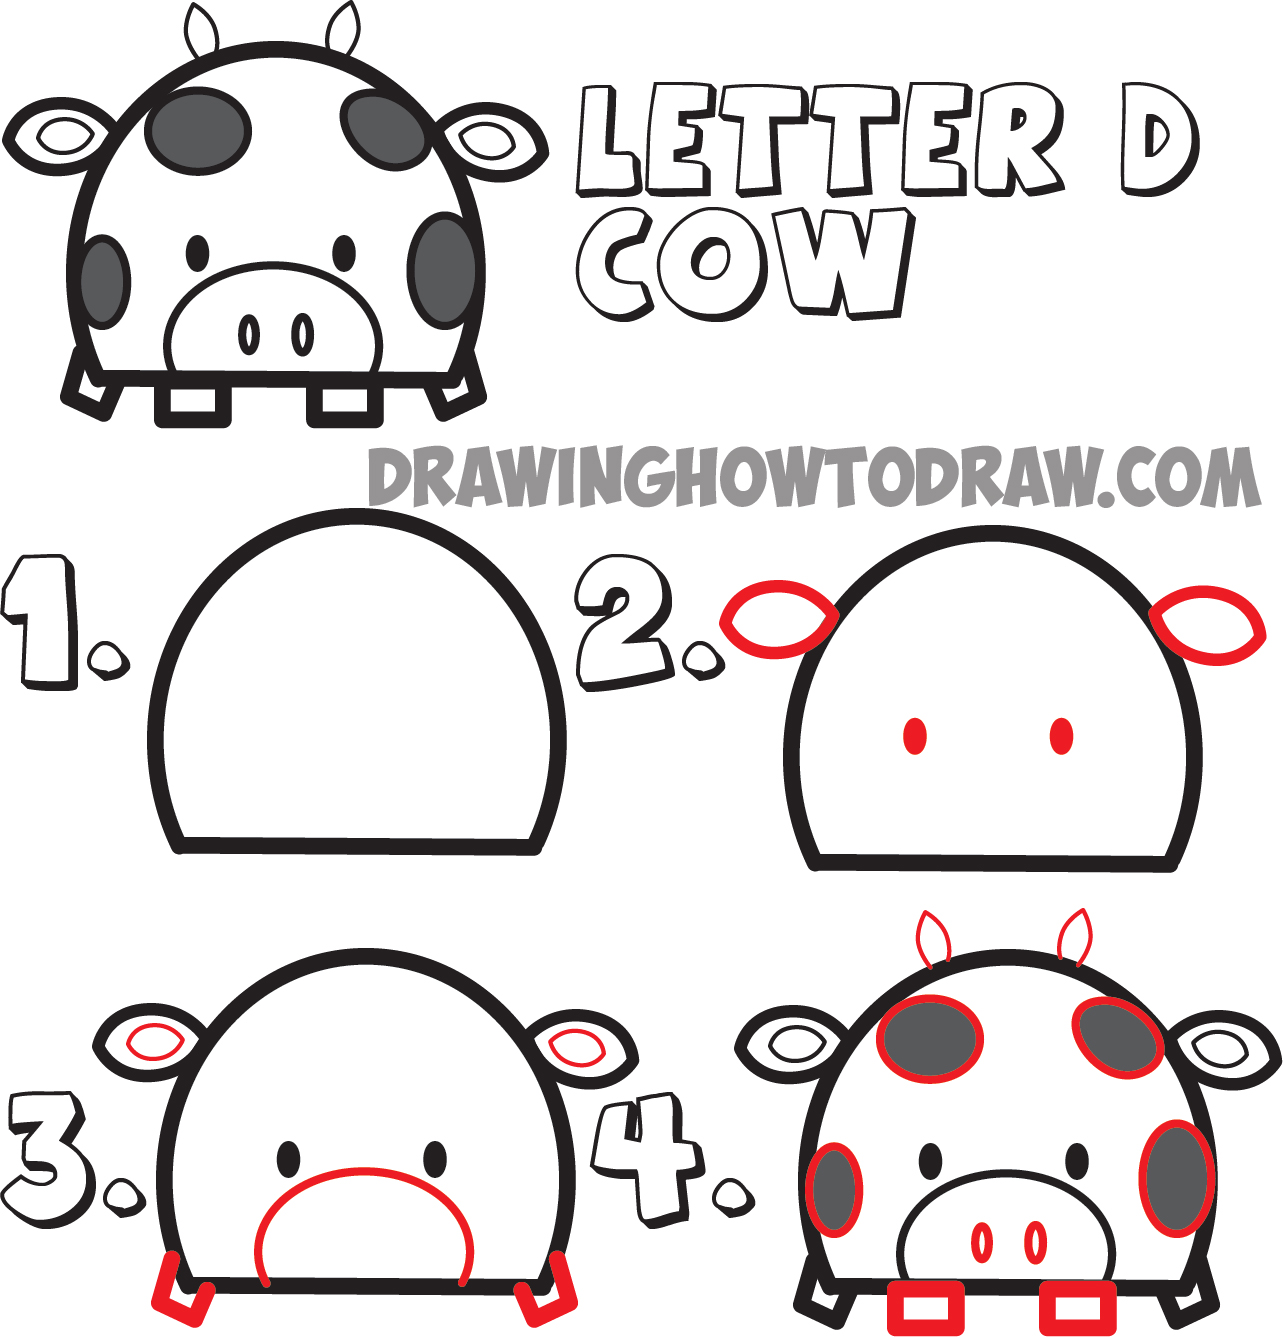 Uncategorized How To Draw Cartoon Kids huge guide to drawing cartoon animals from the uppercase letter d how draw cows shape